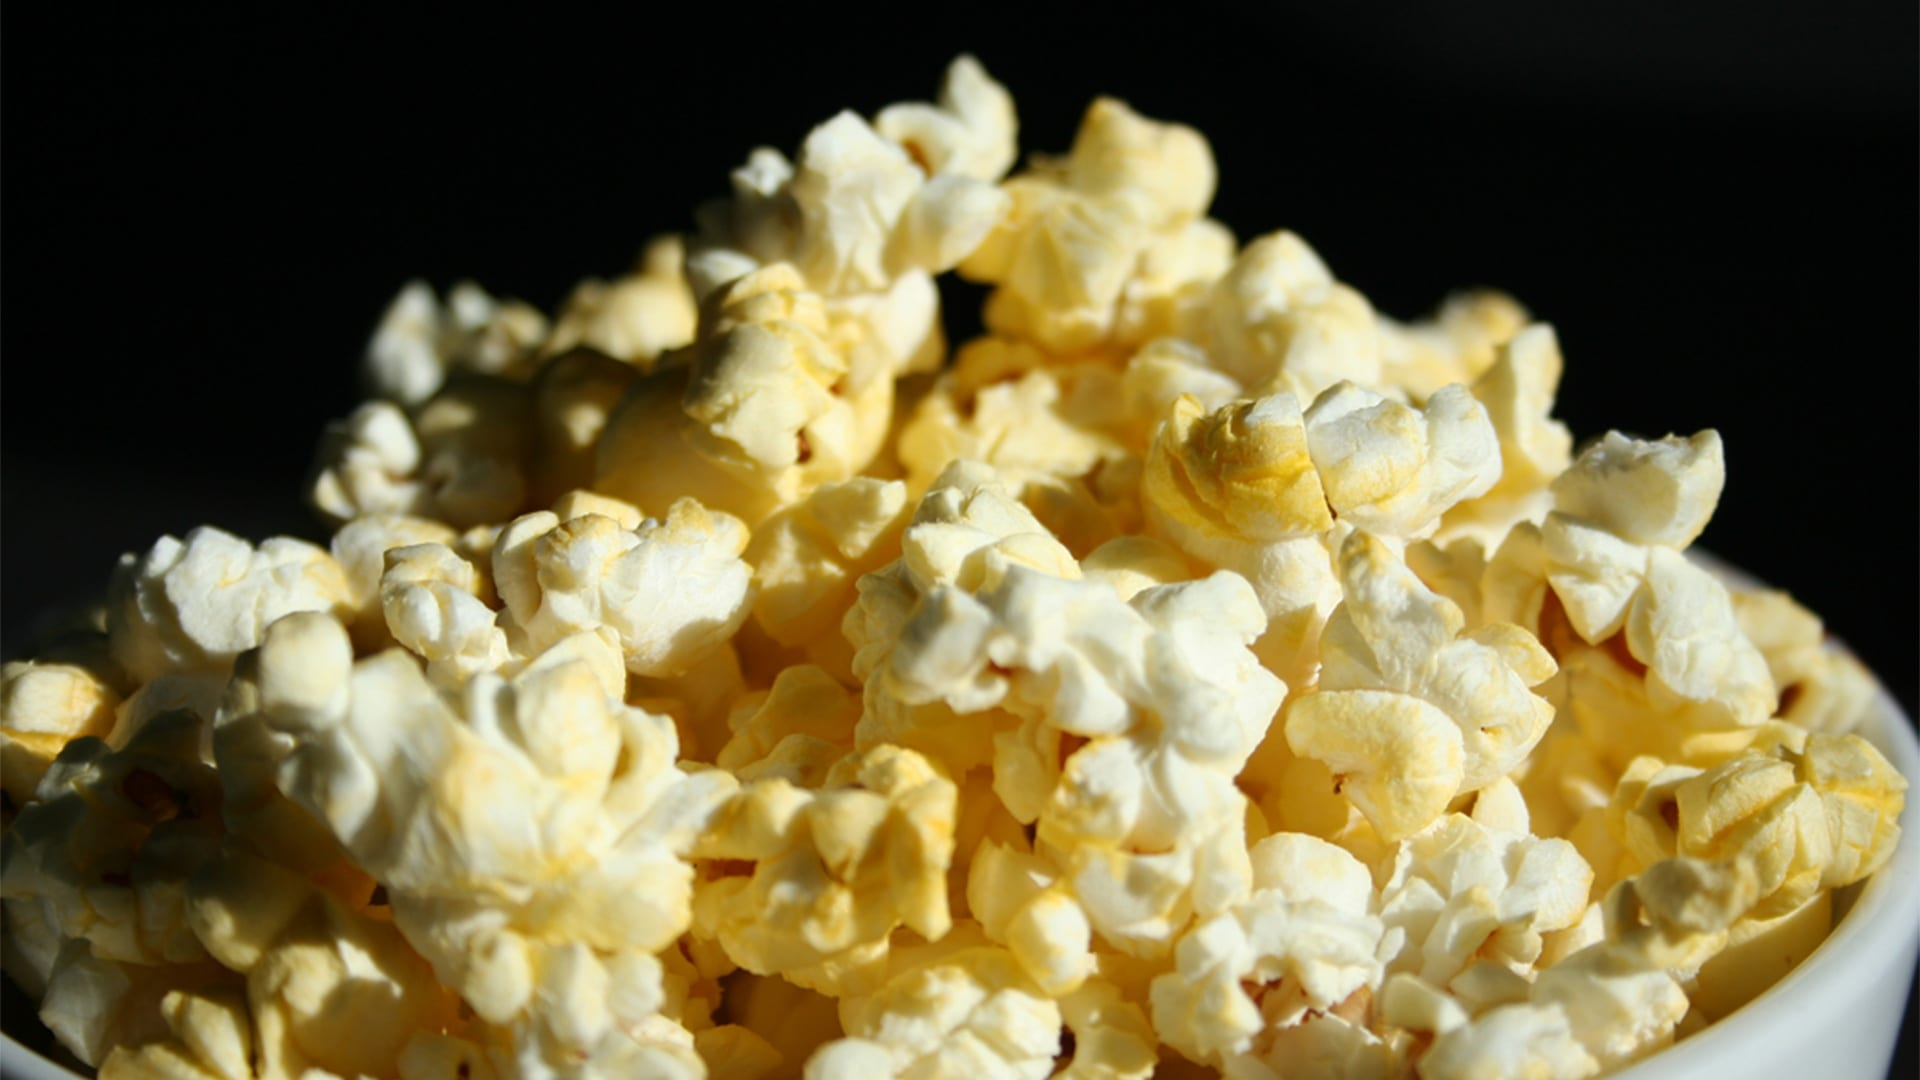 Popcorn has 22 different ways to translate into Spanish